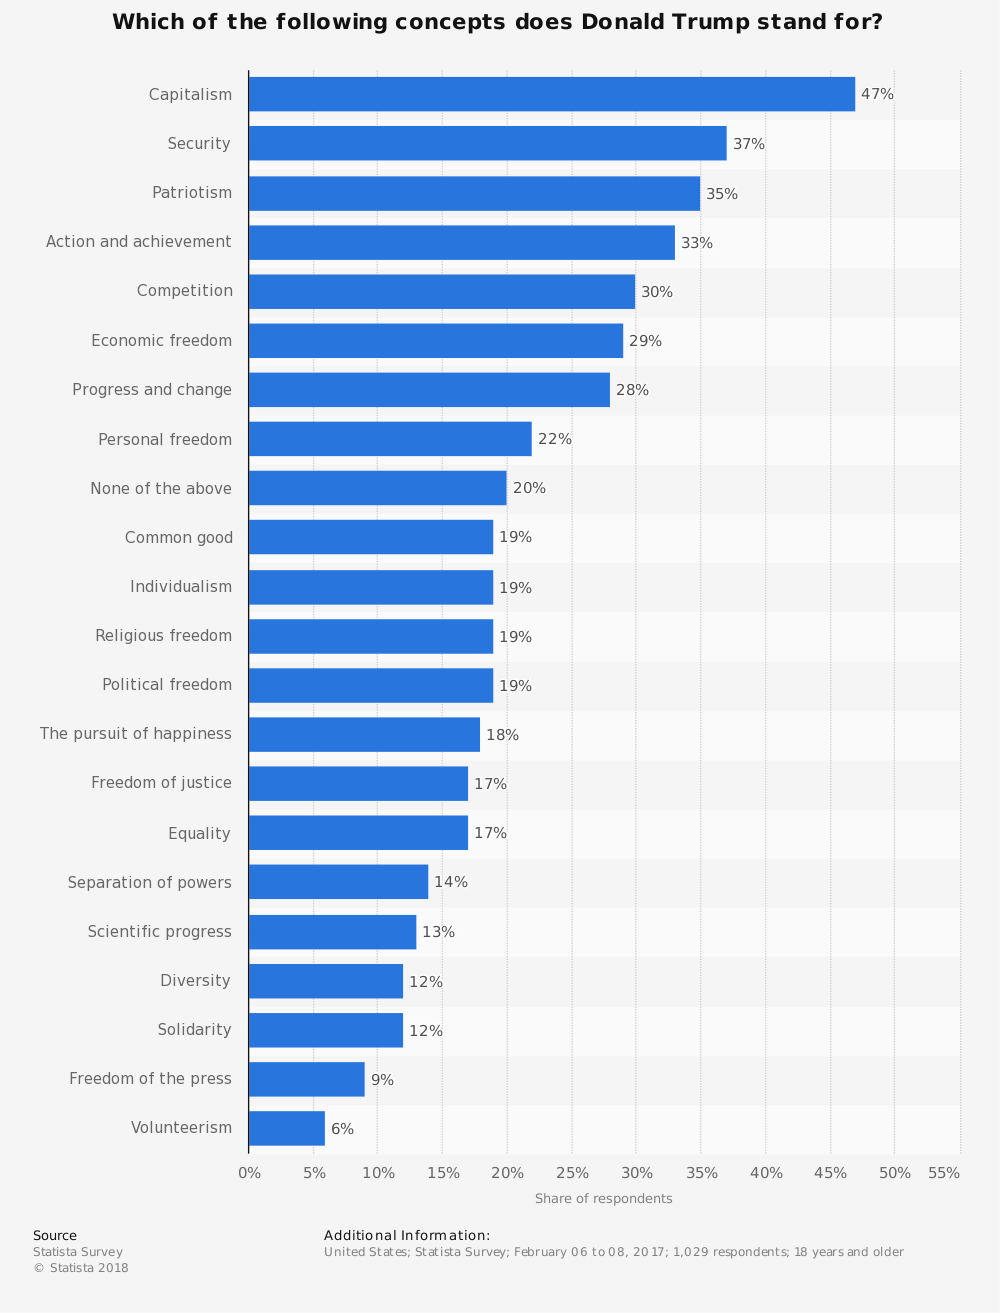 Statistic: Which of the following concepts does Donald Trump stand for? | Statista